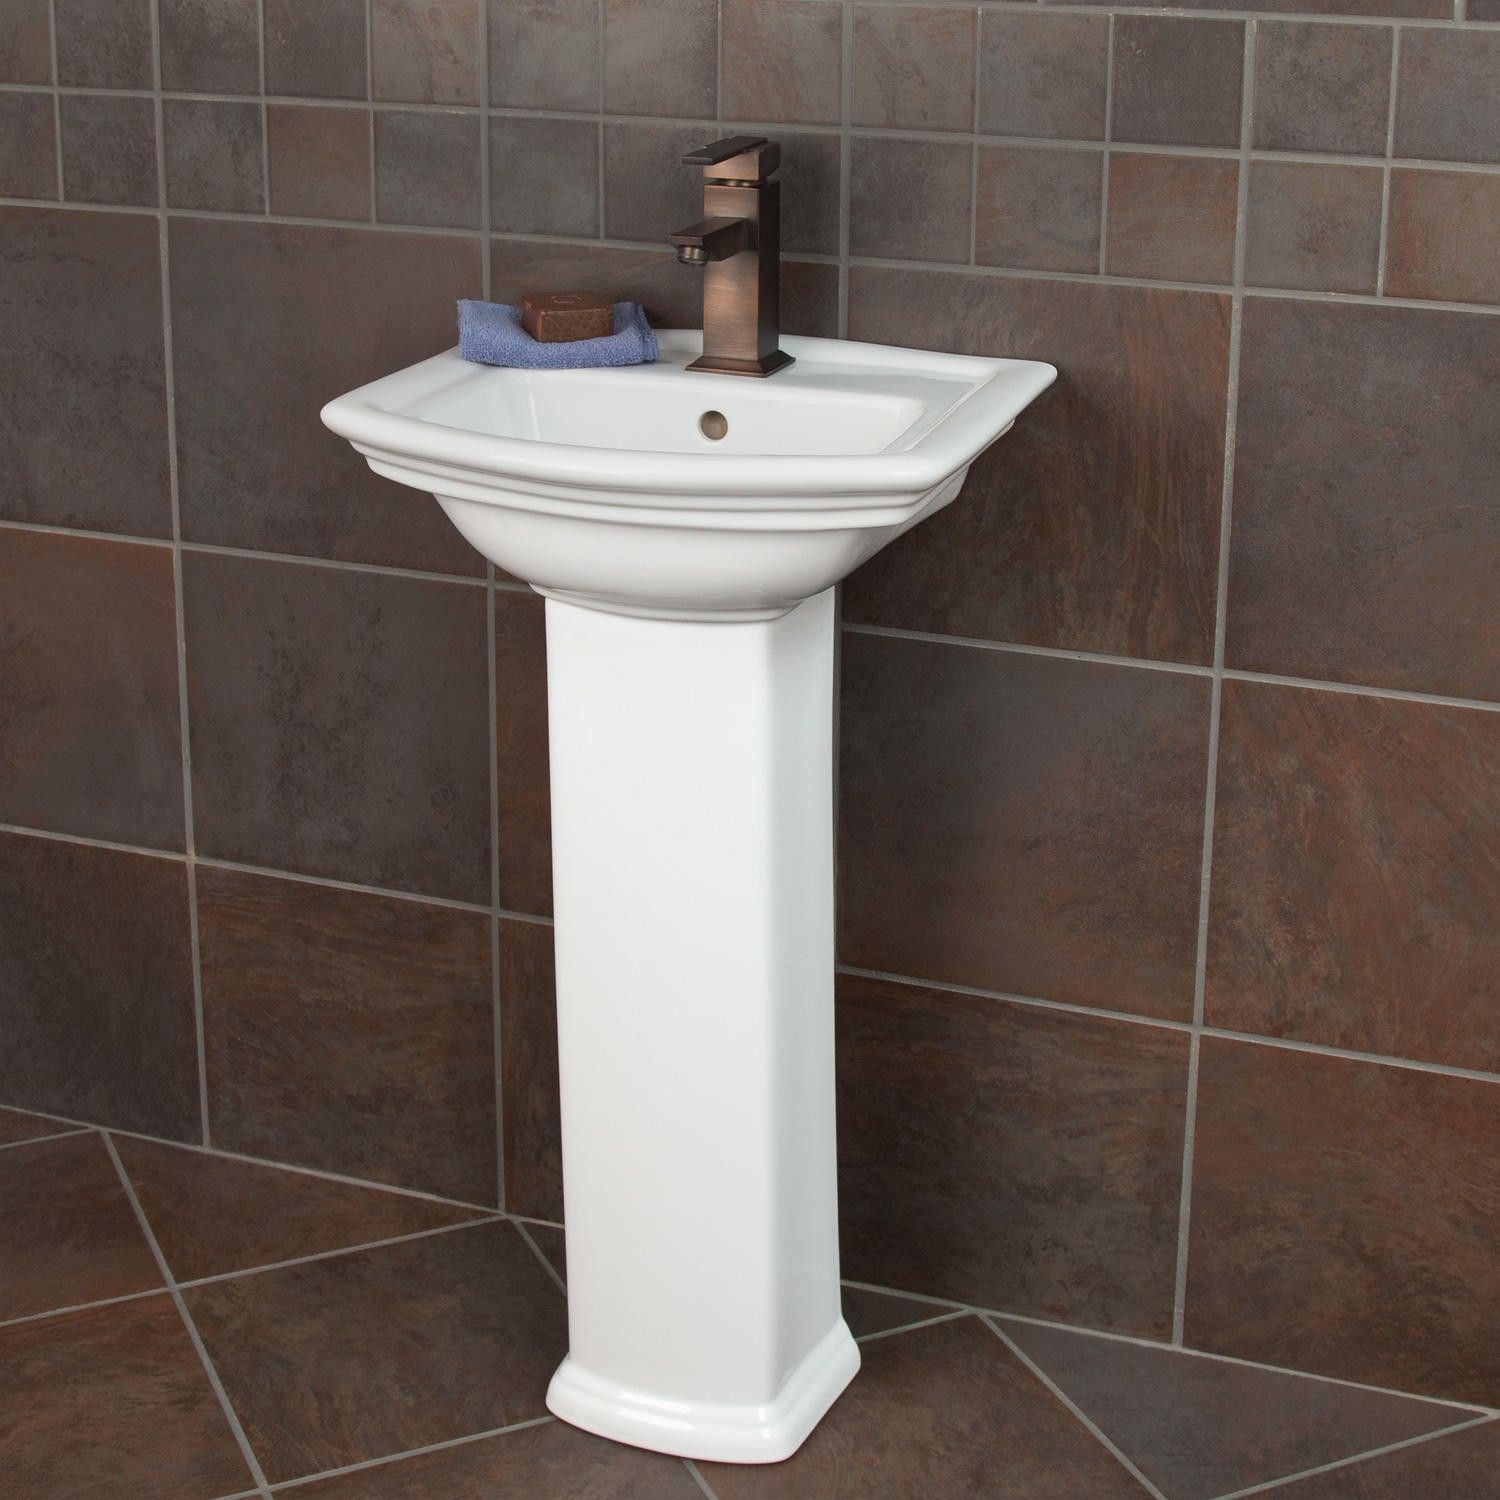 biscuit sink single mini small pedestal with hole faucet porcelain bathroom farnham